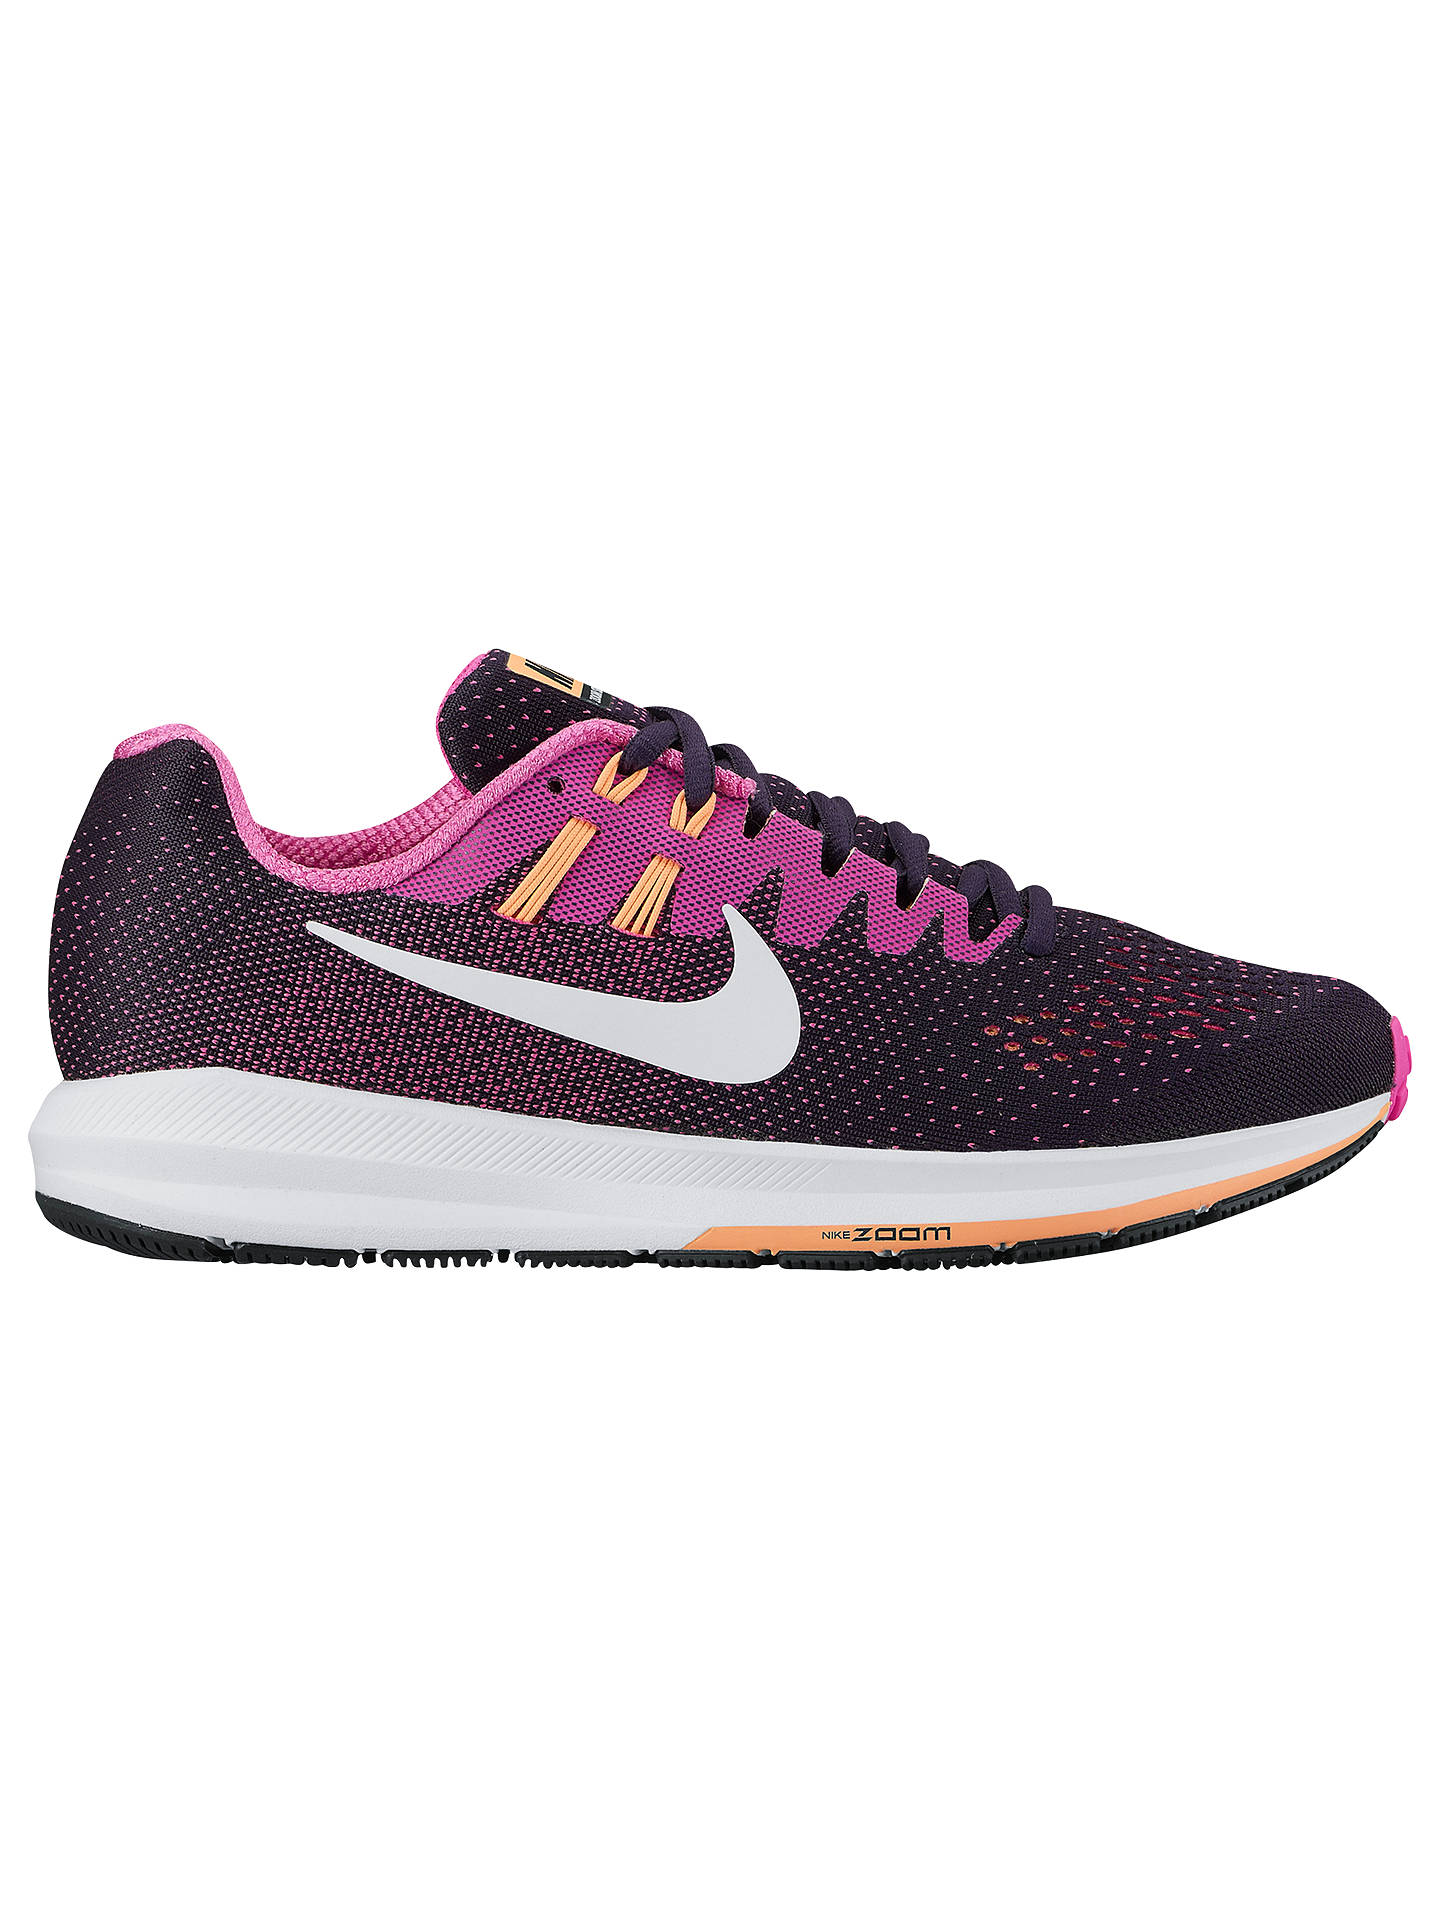 148f29b3b97 BuyNike Air Zoom Structure 20 Women s Running Shoes